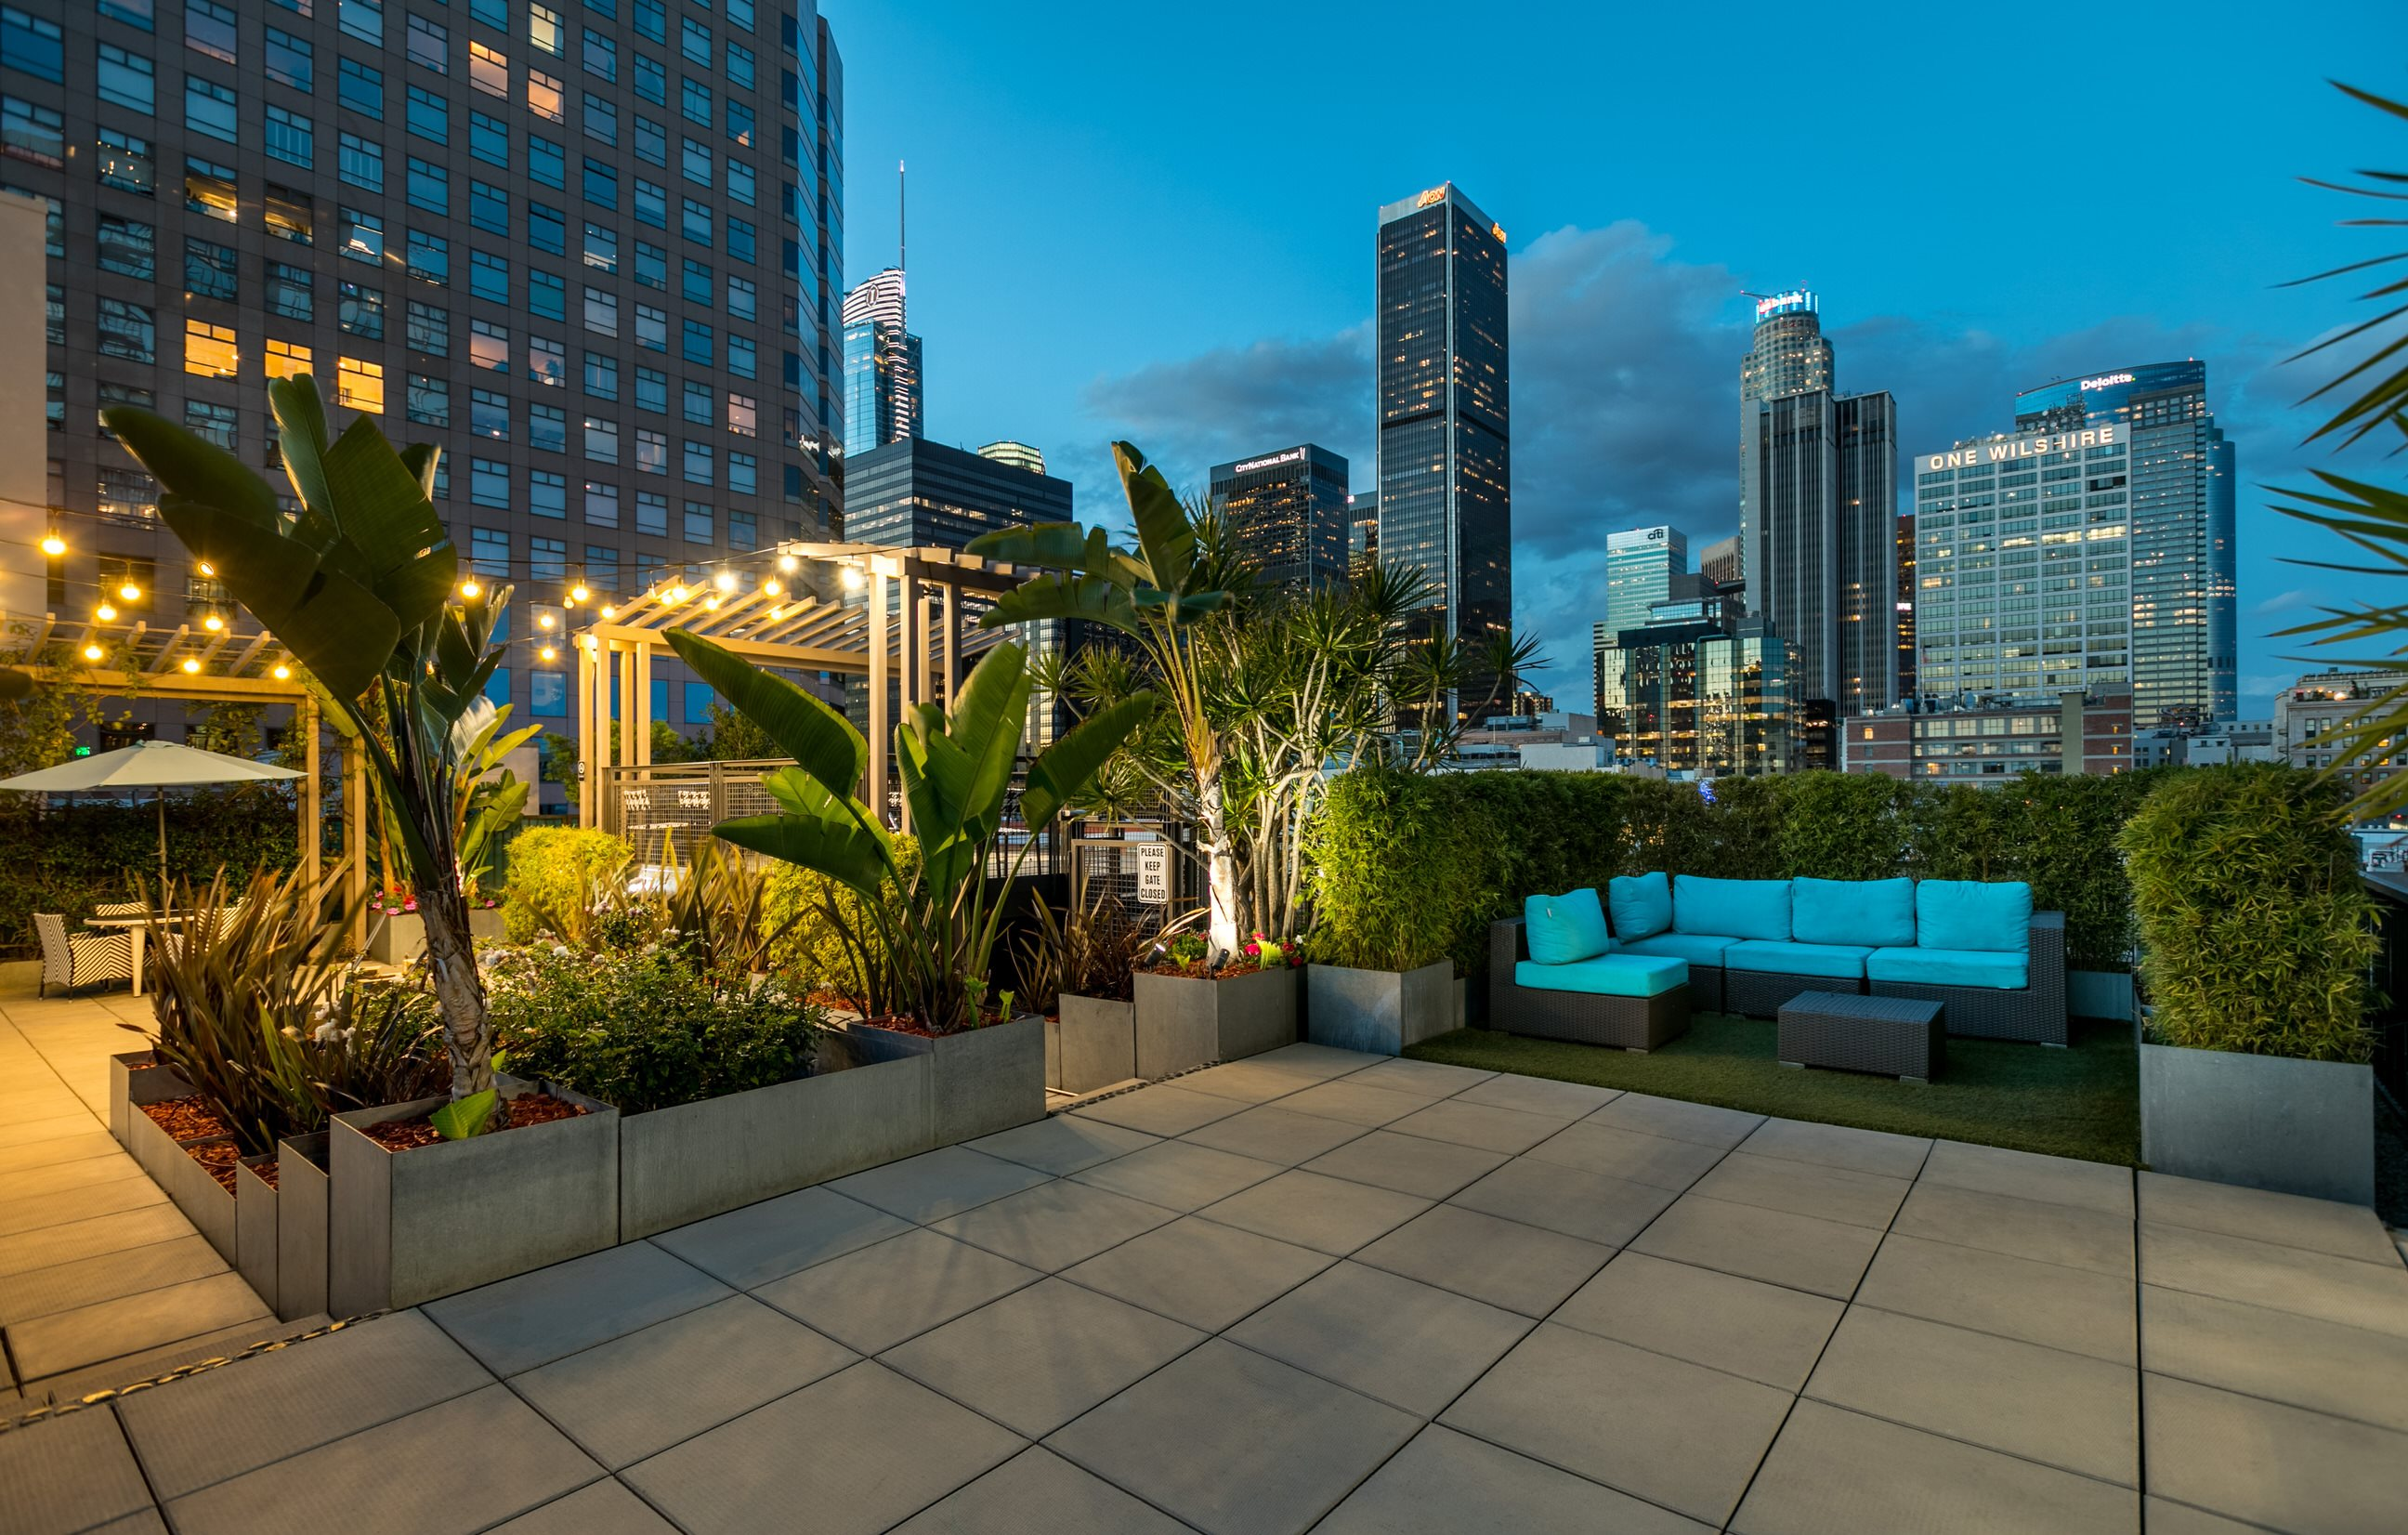 Exterior Photo Rooftop at South Park Lofts 818 Grand Ave, Los Angeles, CA 90017